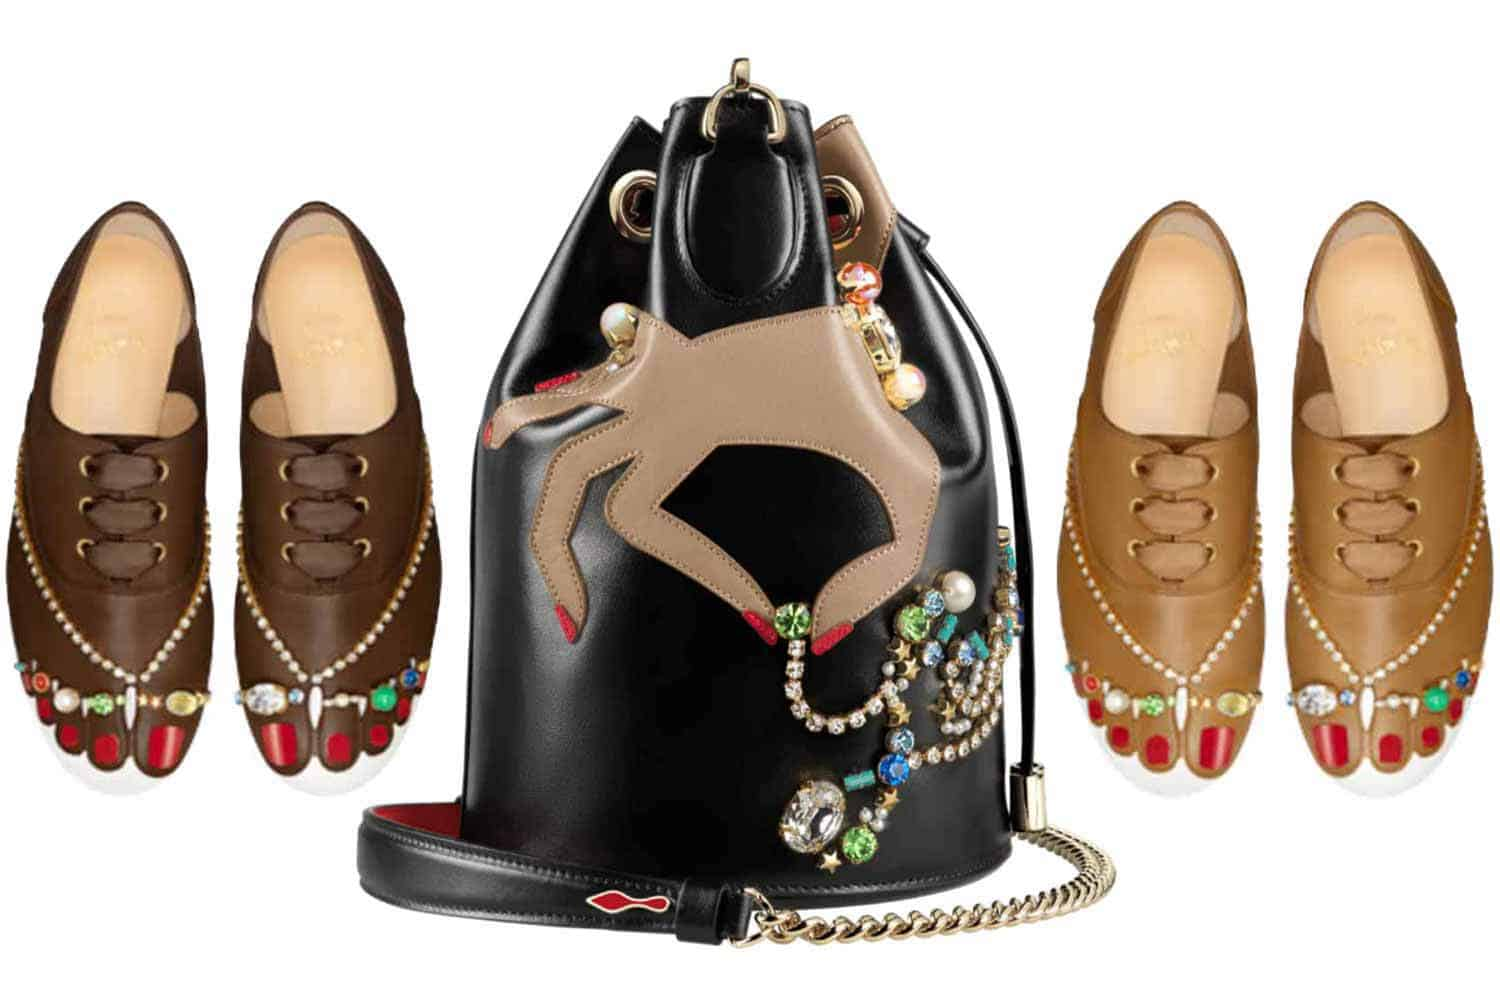 1b6c04d7d Christian Louboutin Surrealist Capsule in Nudes for Every Skin Tone